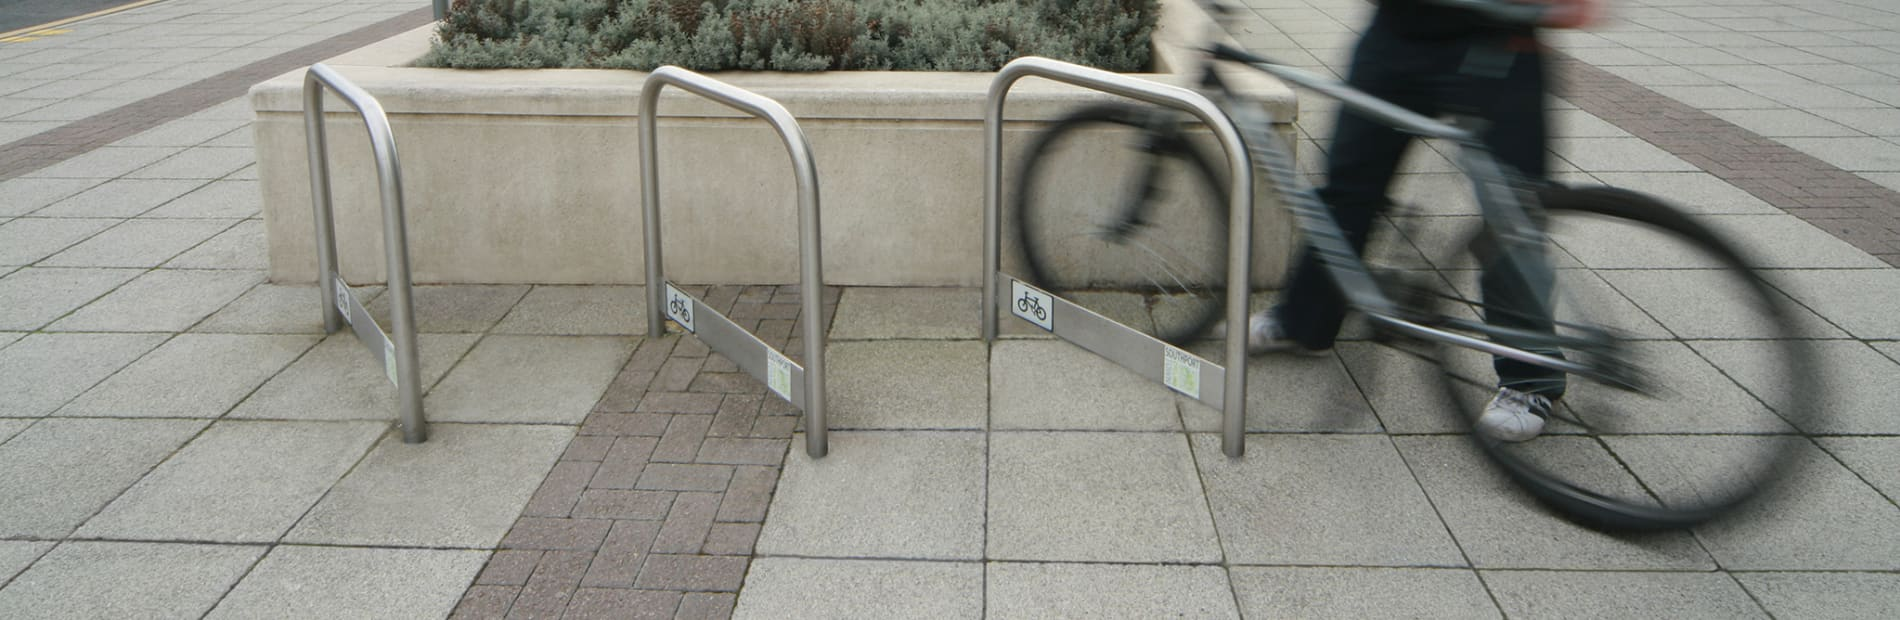 cycle rack stainless steel with a man attaching his bike